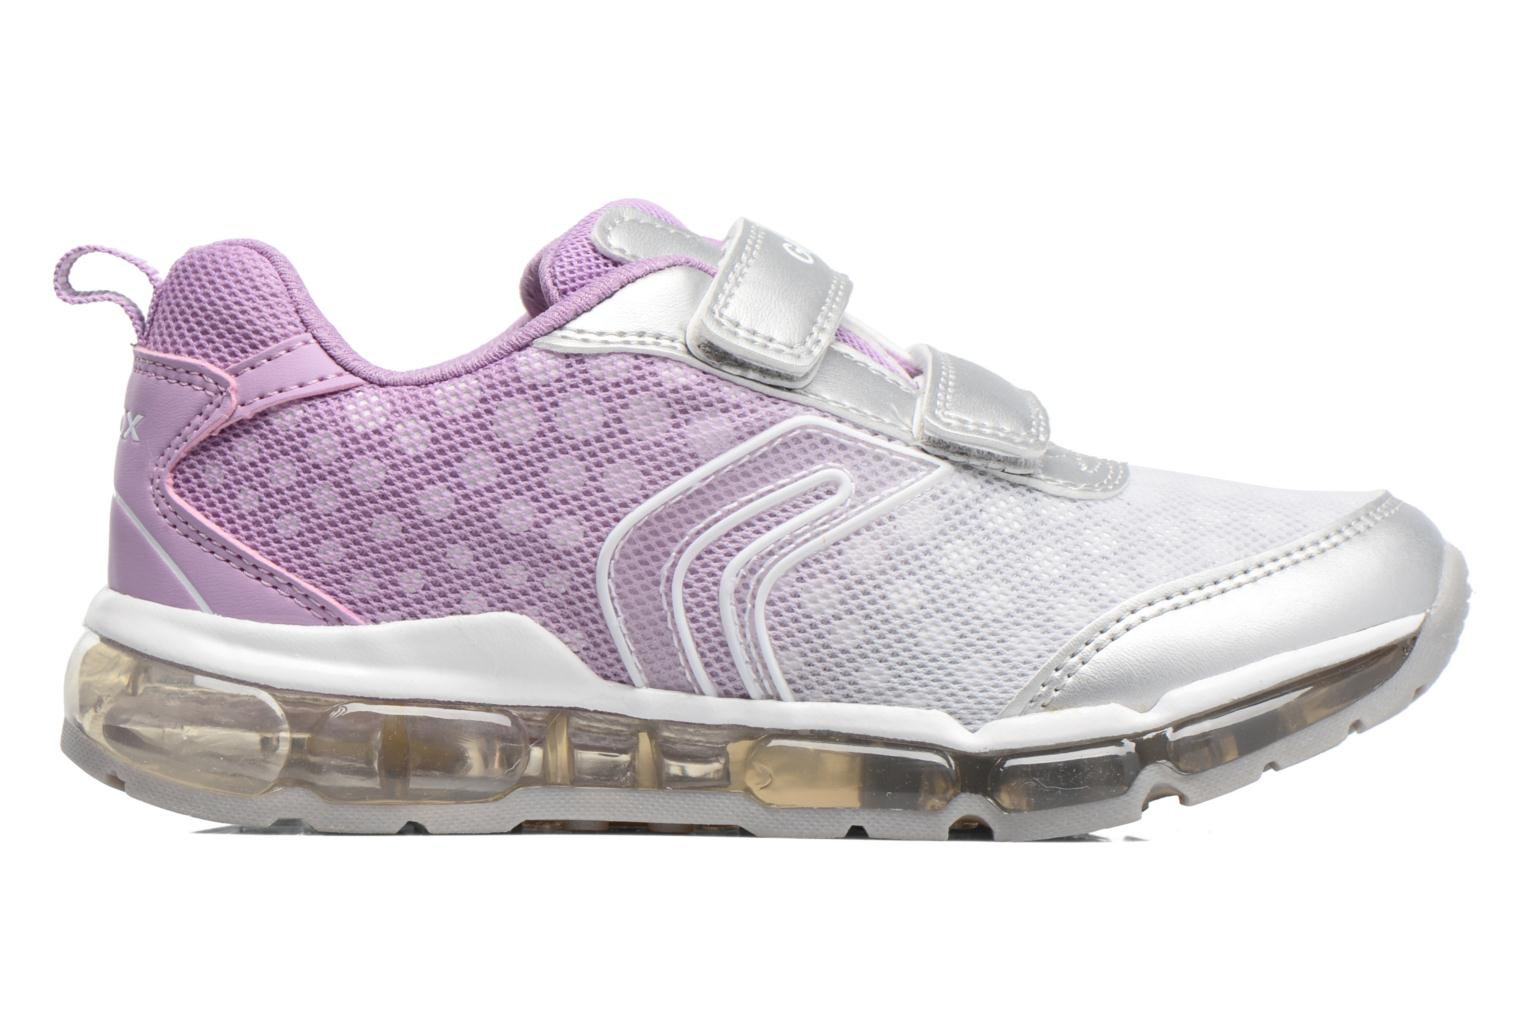 J Android G. J7245B Silver/Lt Lilac